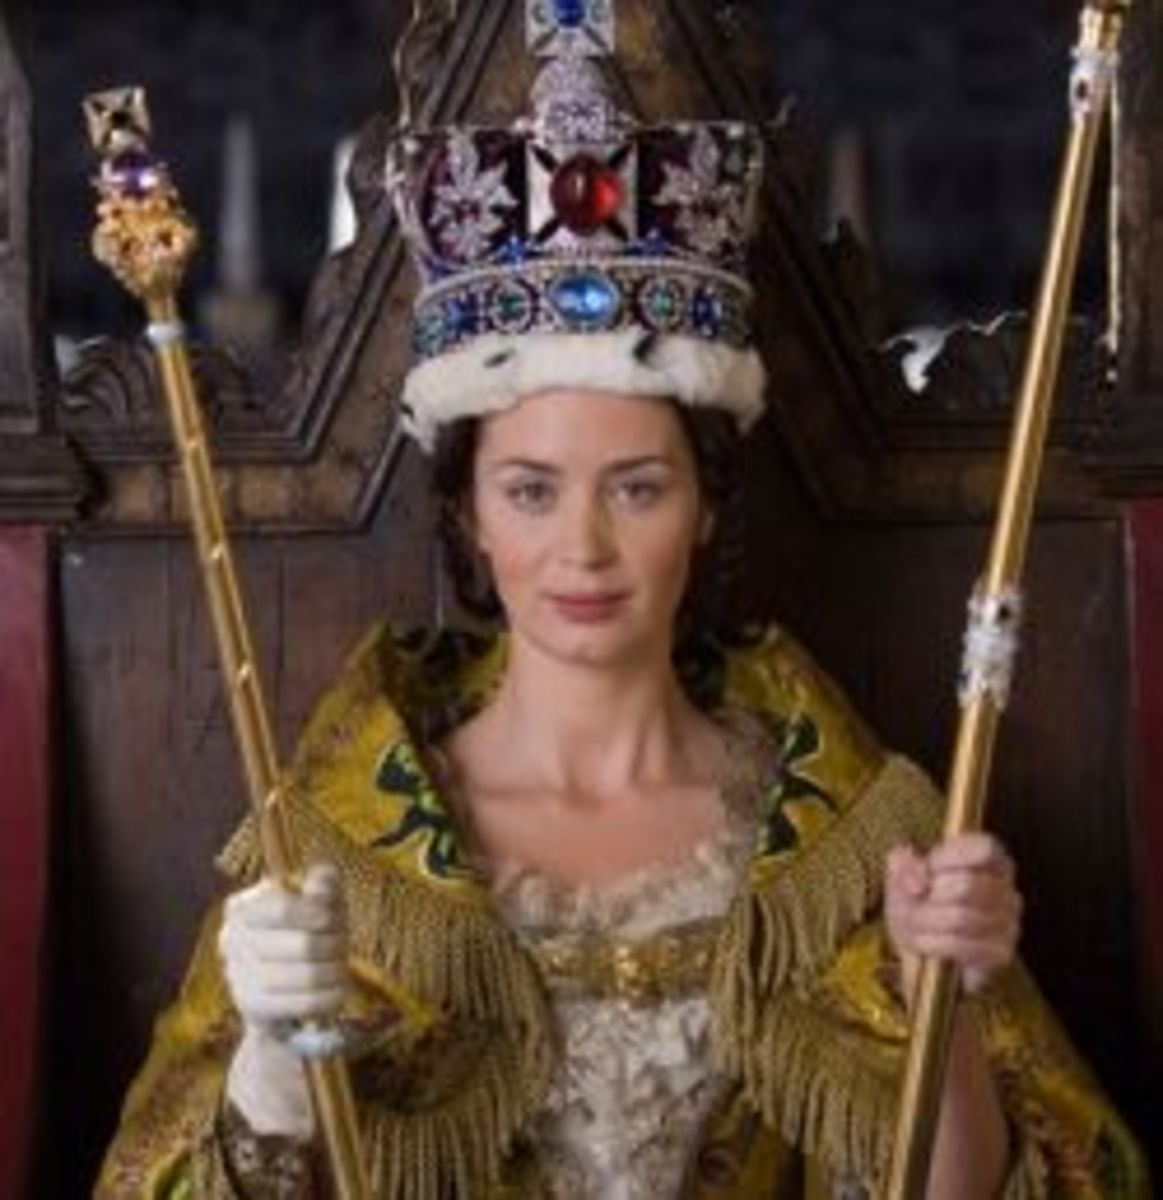 Emily Blunt as Queen Victoria from The Young Victoria